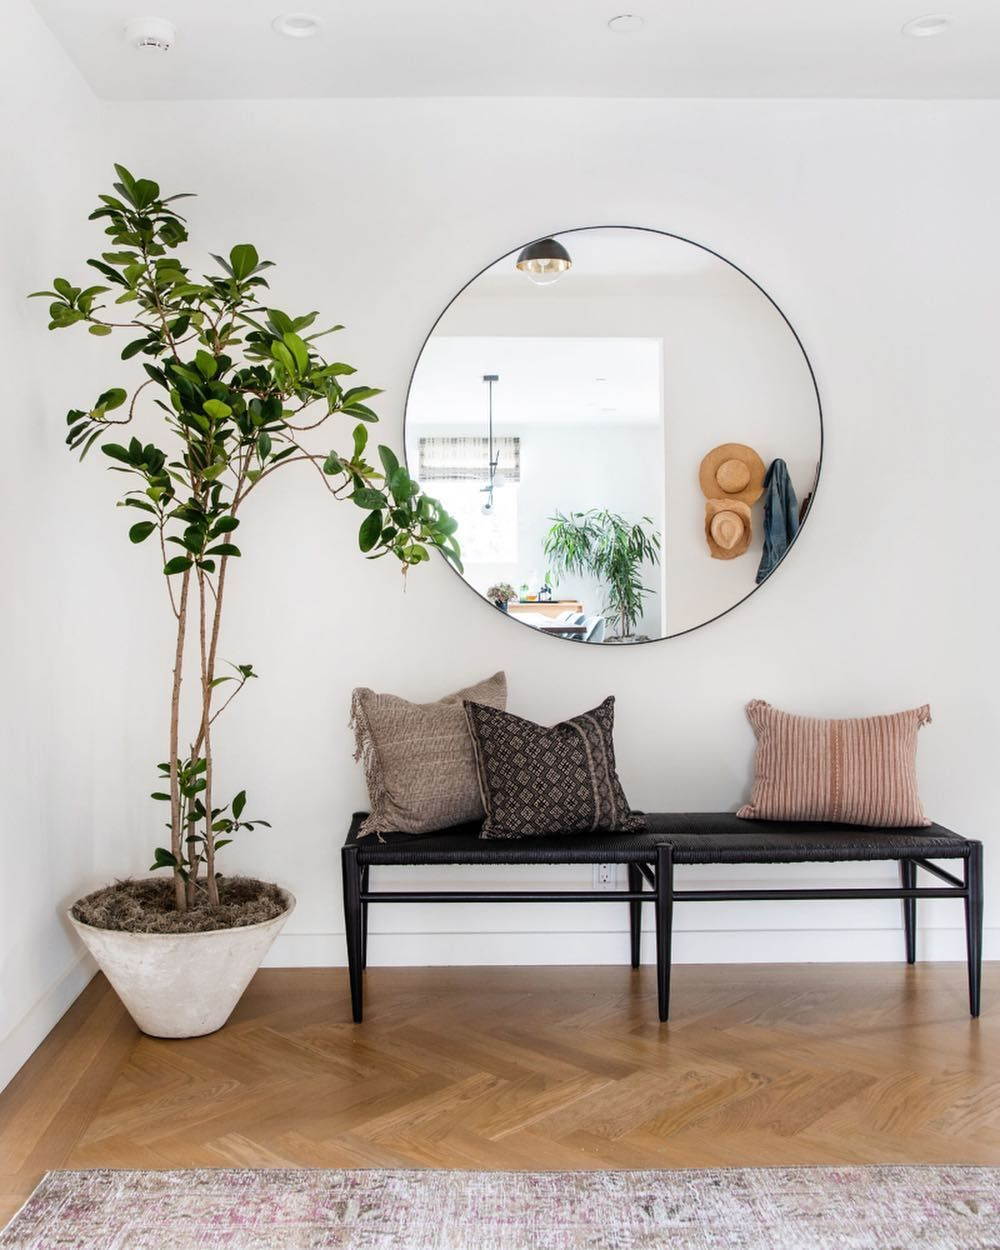 Small Spaces Can Make Big Impressions